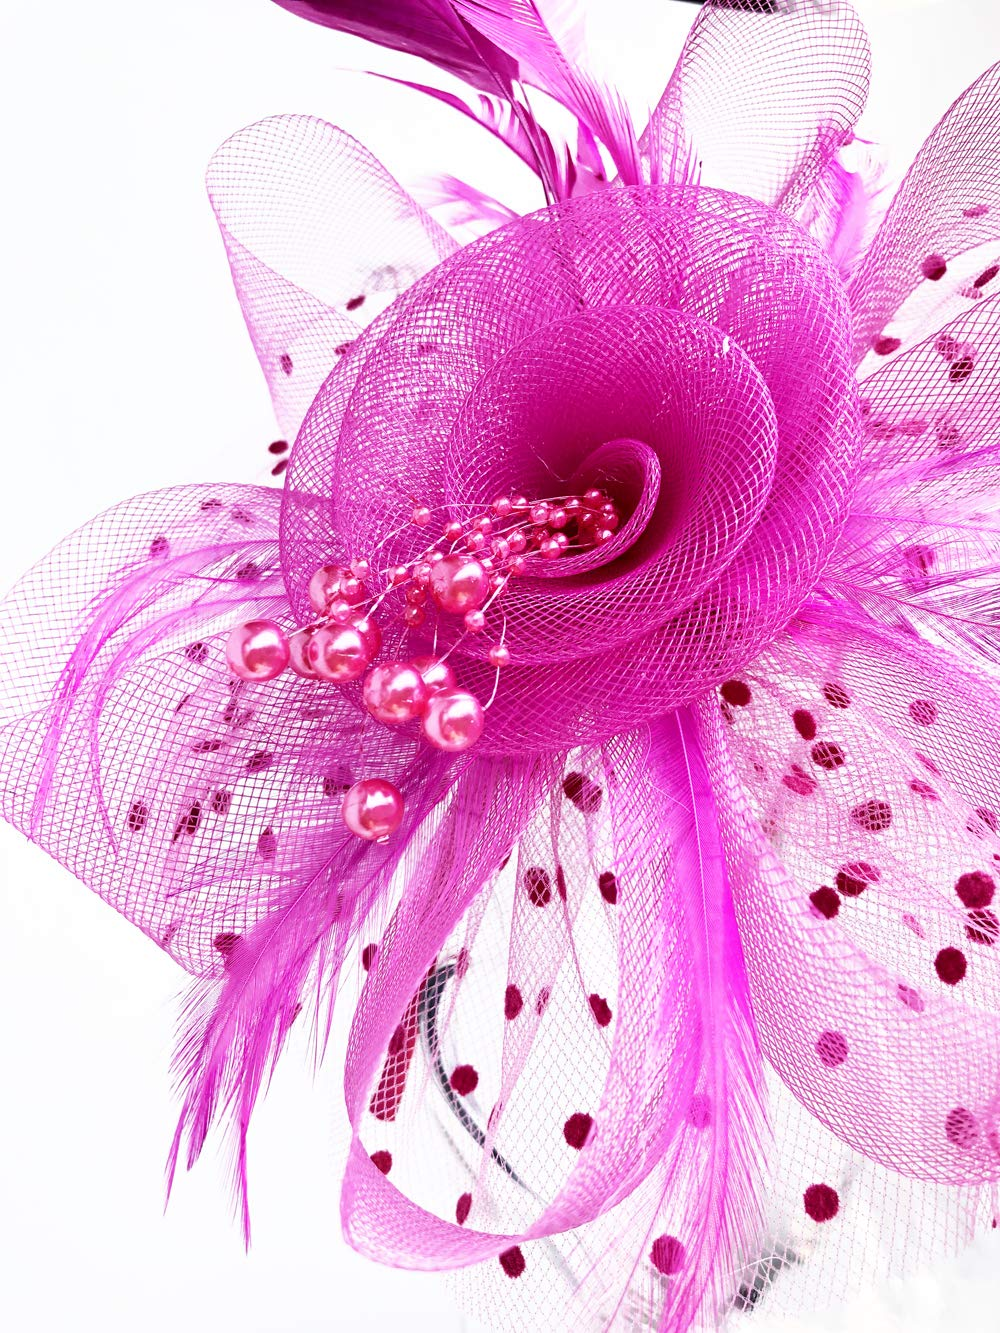 Flower Cocktail Tea Party Headwear Feather Fascinators Top Hat for Girls and Women (Fushia) by Kathyclassic (Image #5)